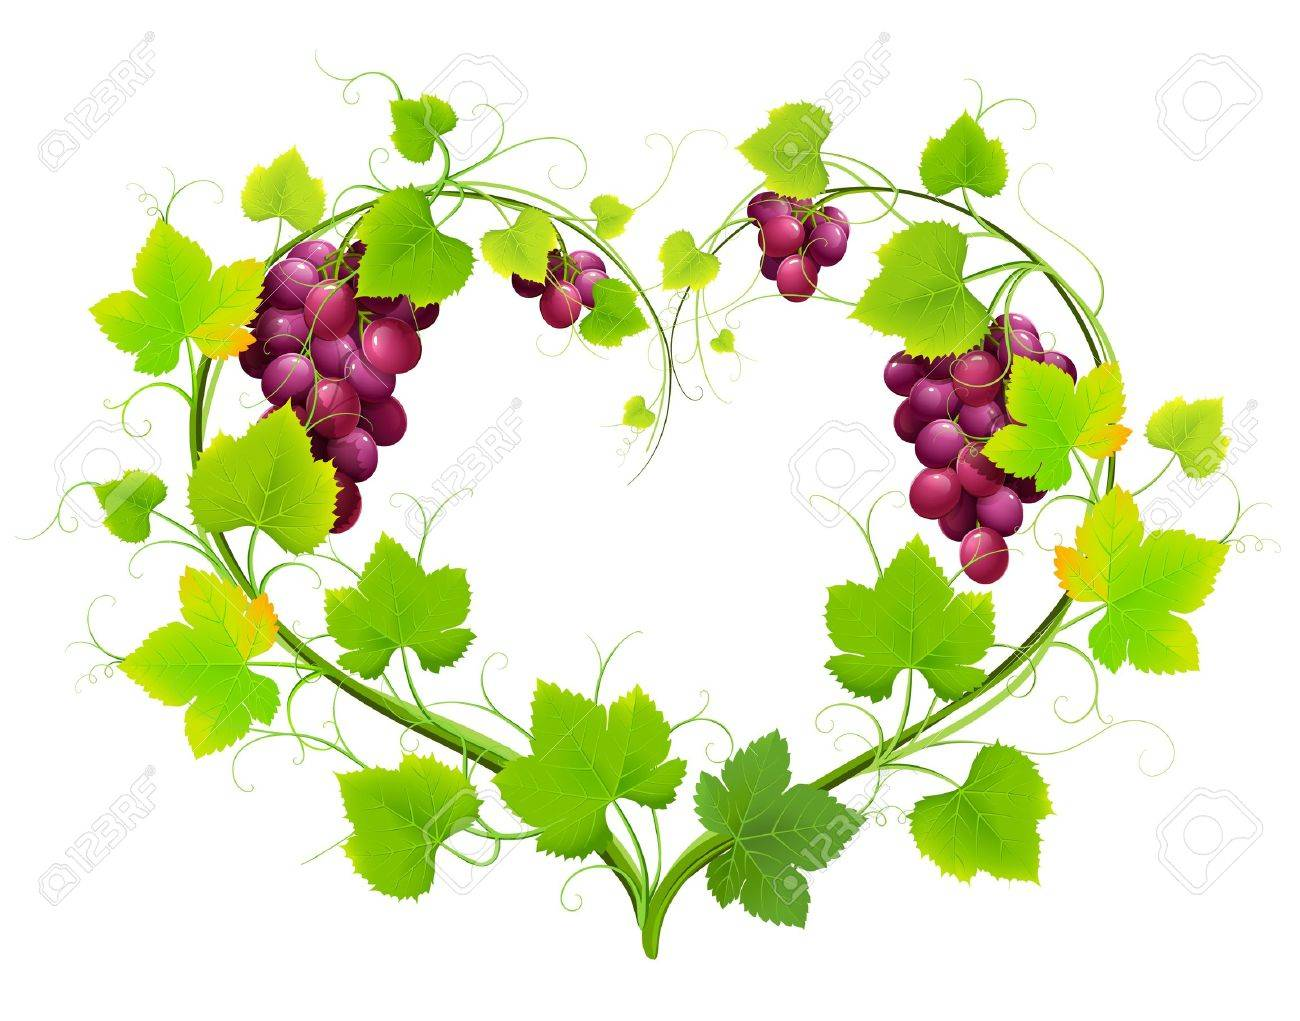 1300x1021 Grapes With Leaves In The Form Of Heart. Vector Royalty Free